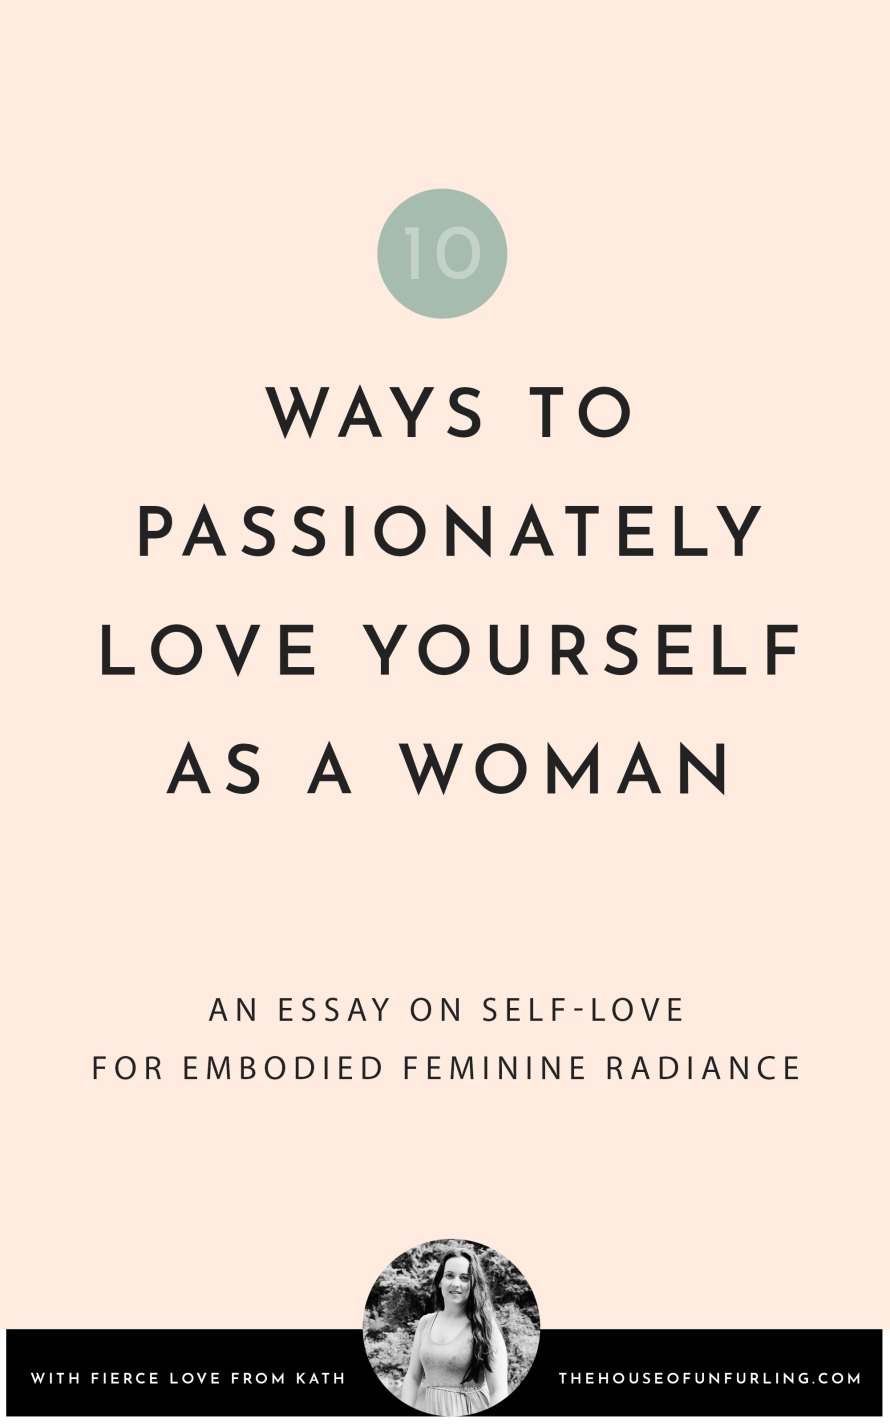 CLICK THROUGH TO READ: 10 ways to passionately love yourself as a woman. From Embodied Feminine Radiance. With fierce love, Kath - kathleensaelens.com